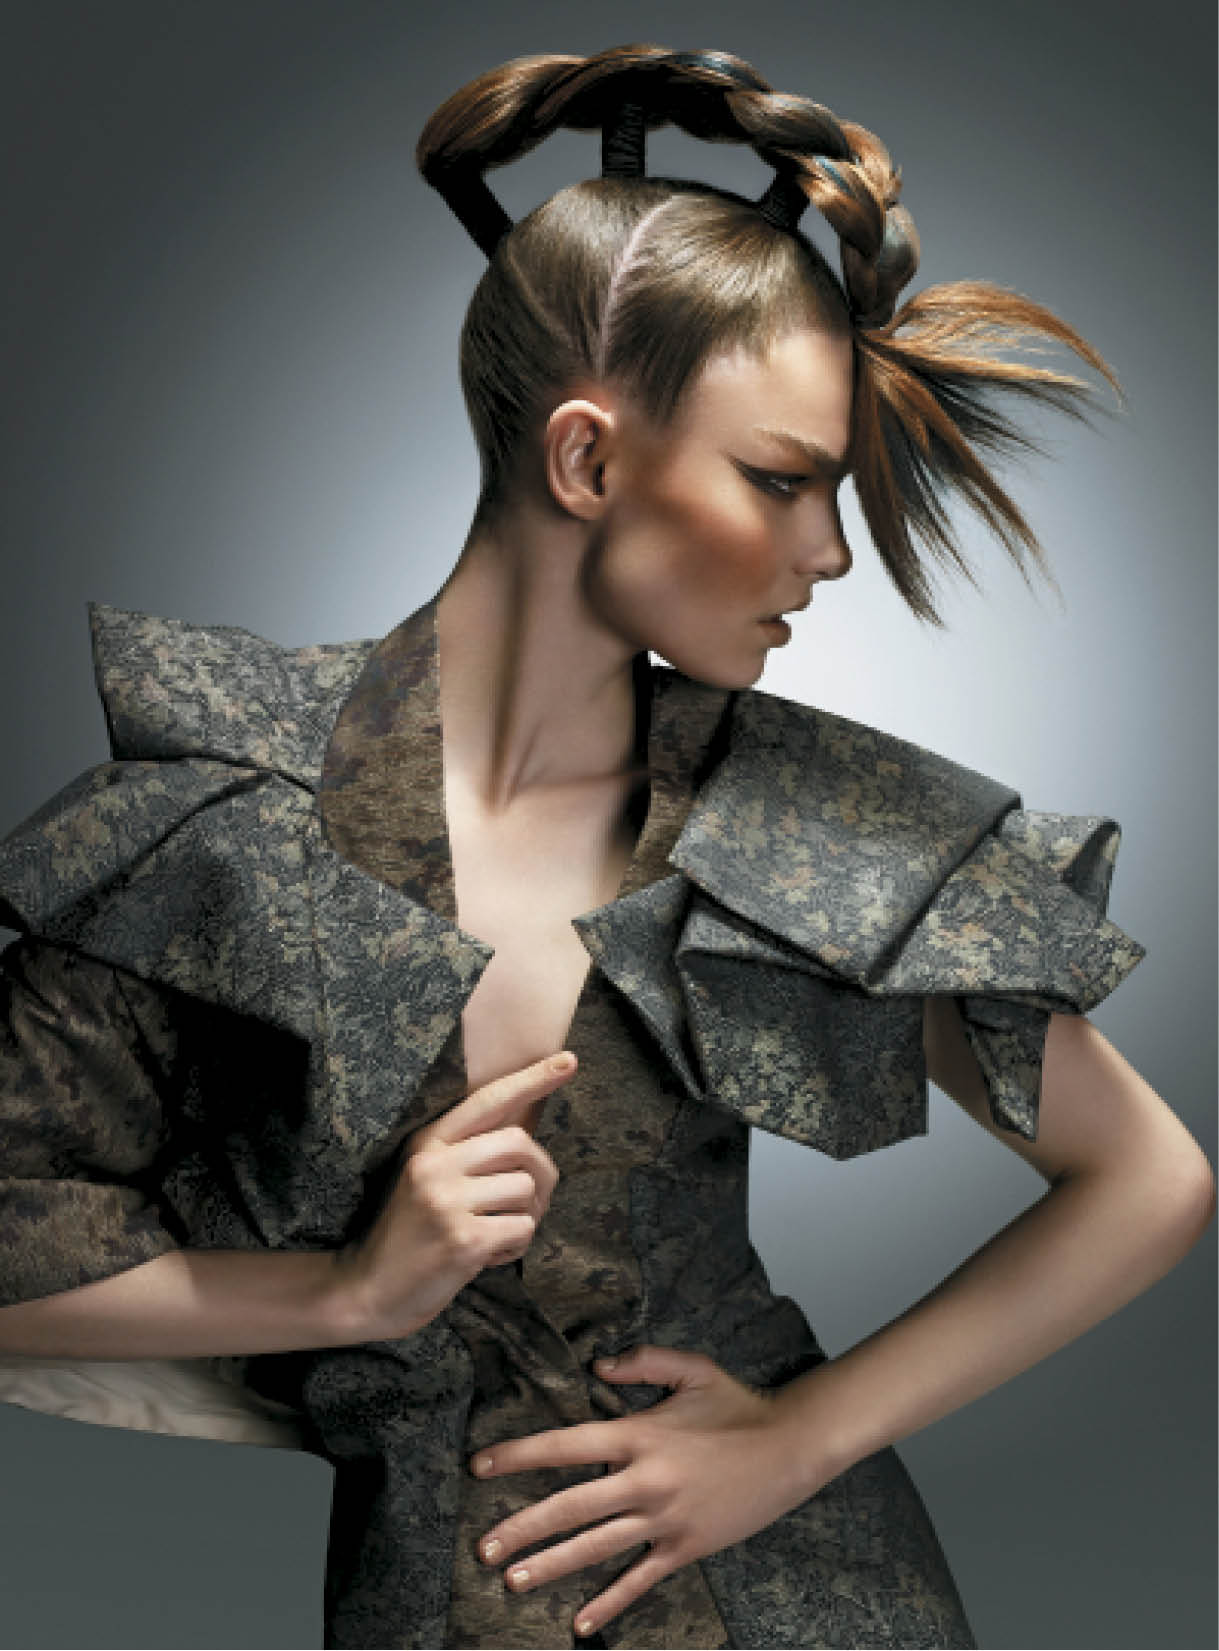 To create a structured style with movement, Baek first sectioned hair into three ponytails and used a plait technique to connect them at the front. Next he tied the hair with elastic and used Deviation Paste to add texture and separation to the hair.